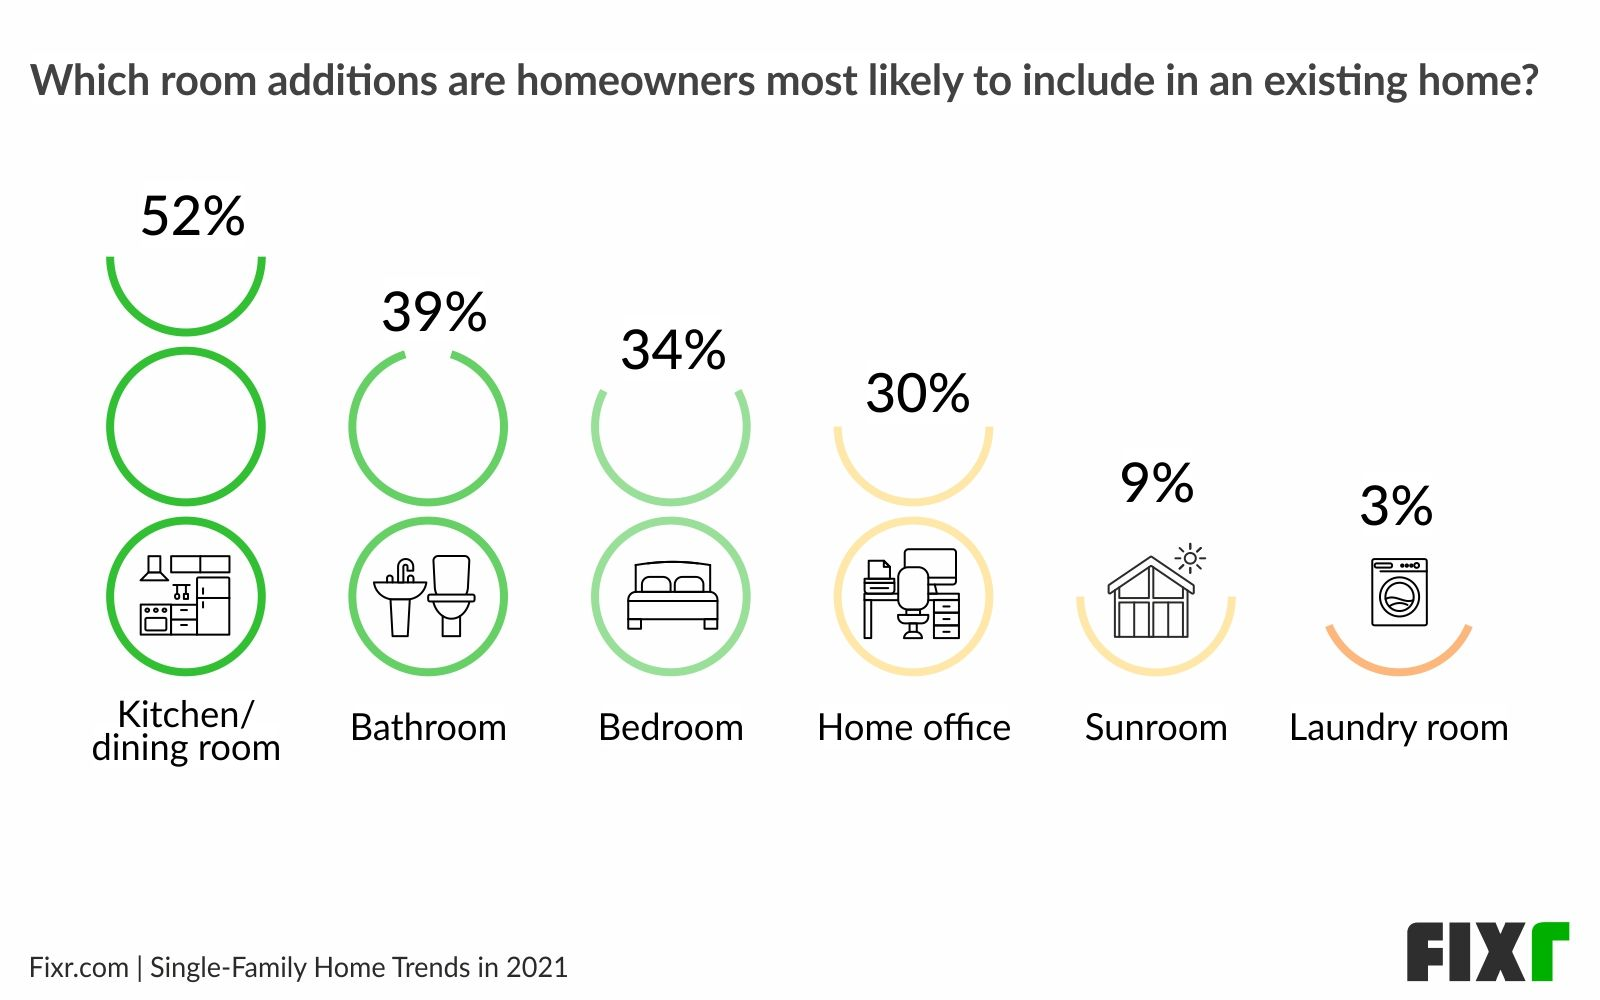 Home remodeling trends 2021 - Top home additions